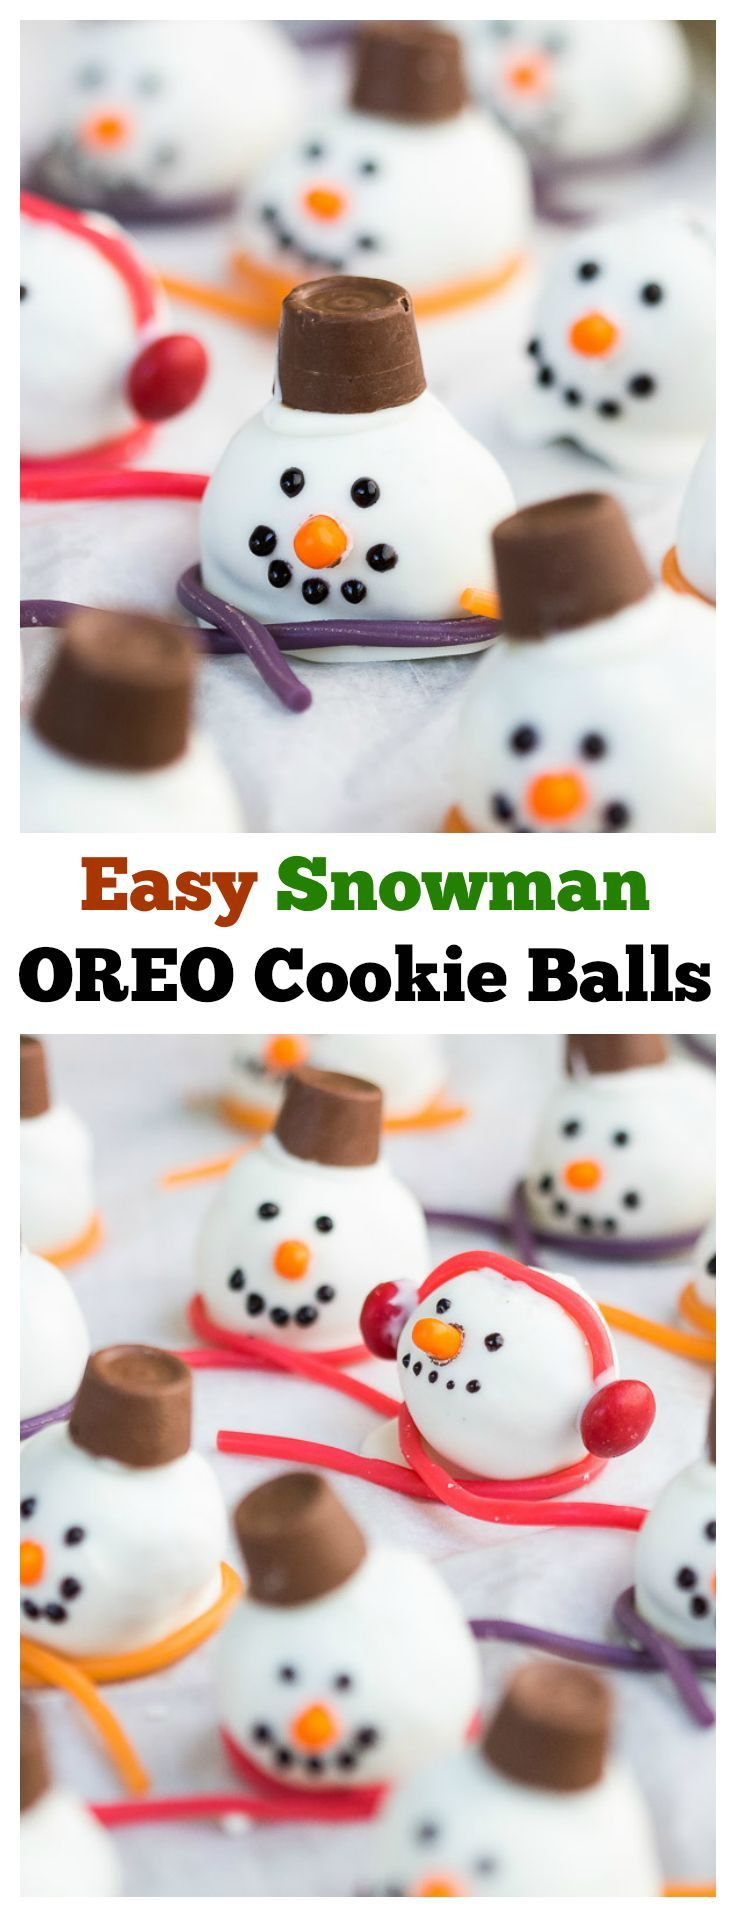 Add a special treat to your Christmas cookie plates with these Easy Snowman Oreo Cookie Balls! They are so fun to make and even better to eat! #OREOCookieBalls #ad